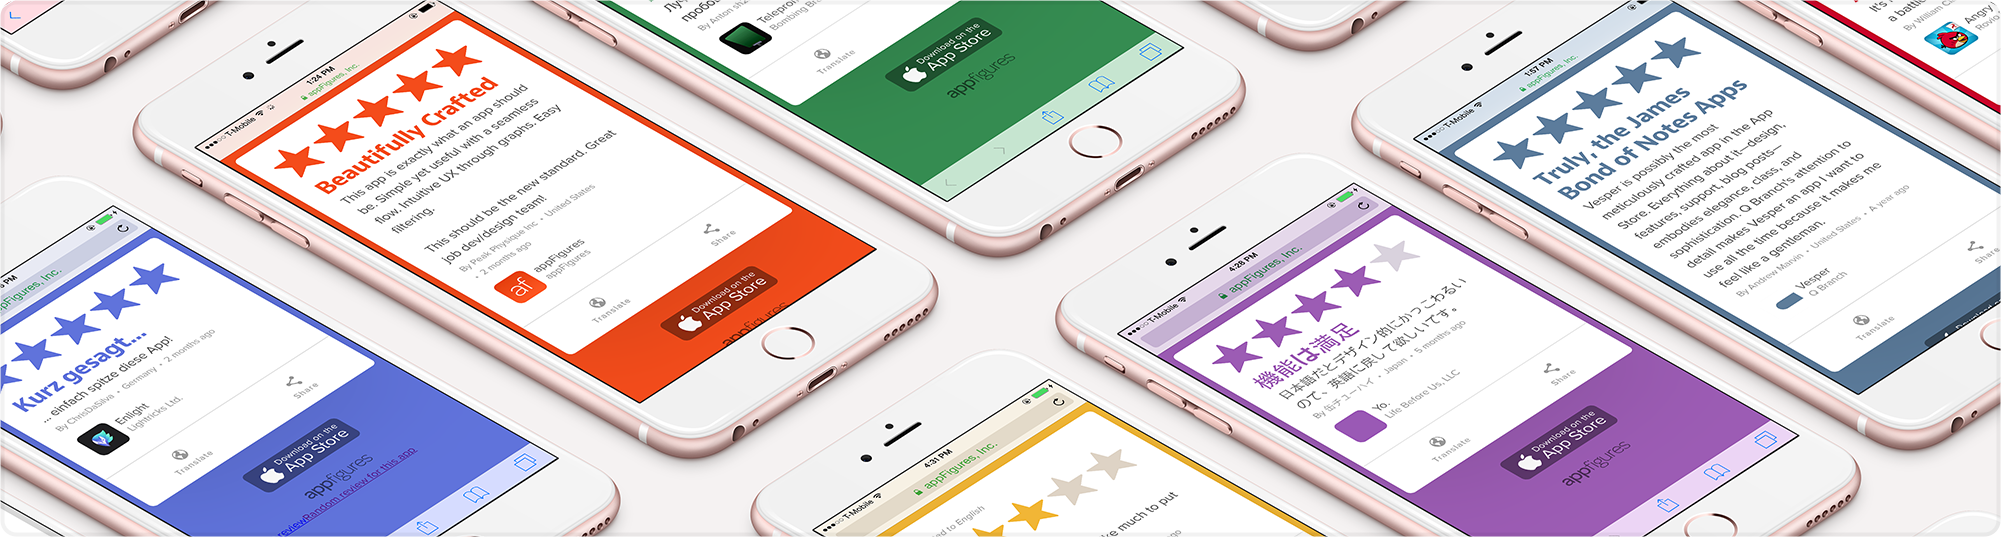 App store reviews are easy to share with Review Cards from appFigures